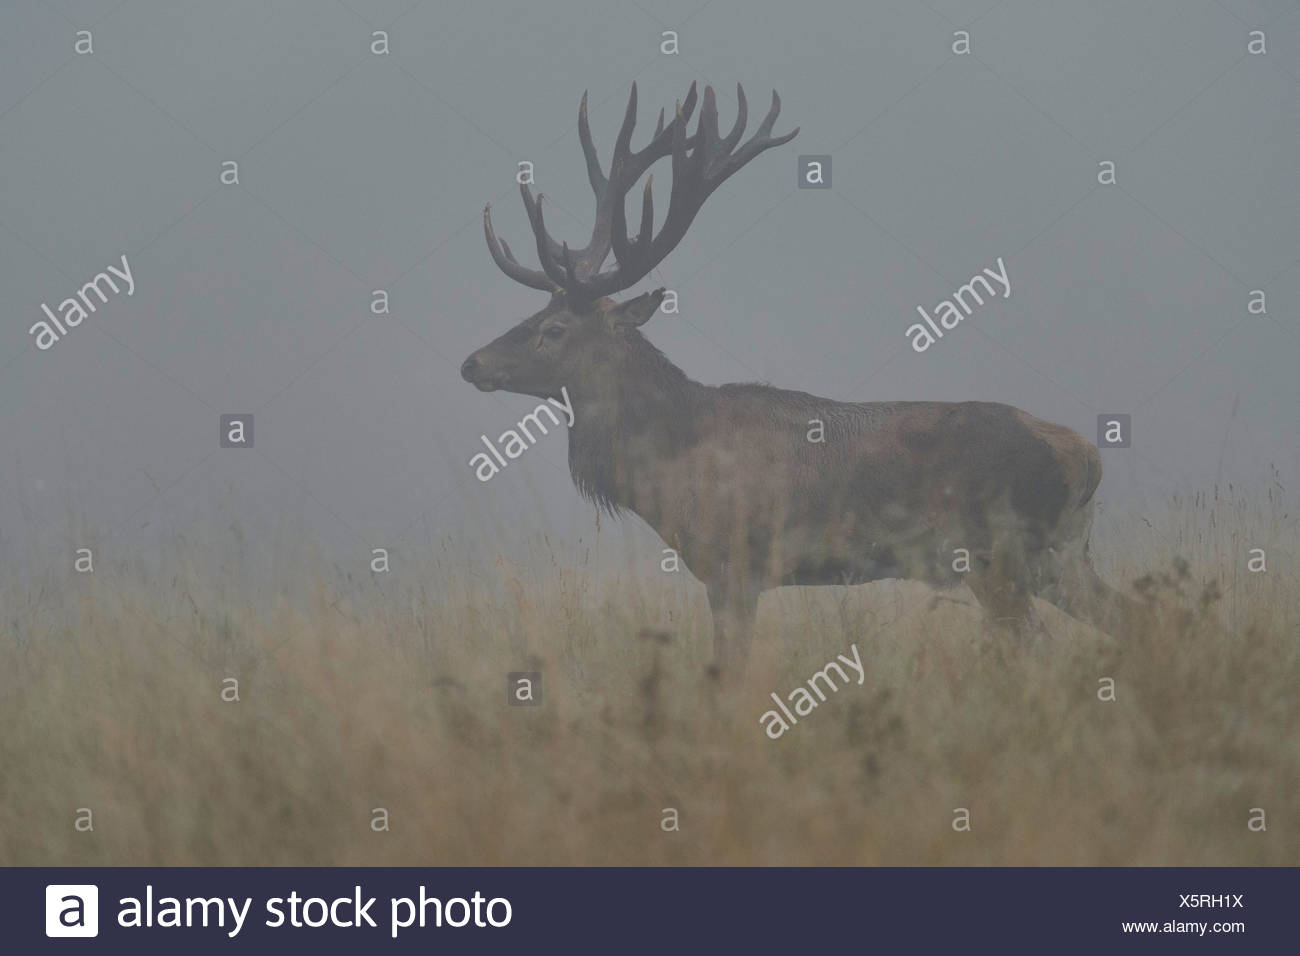 red deer (Cervus elaphus), imposing old stag in mist, Denmark - Stock Image